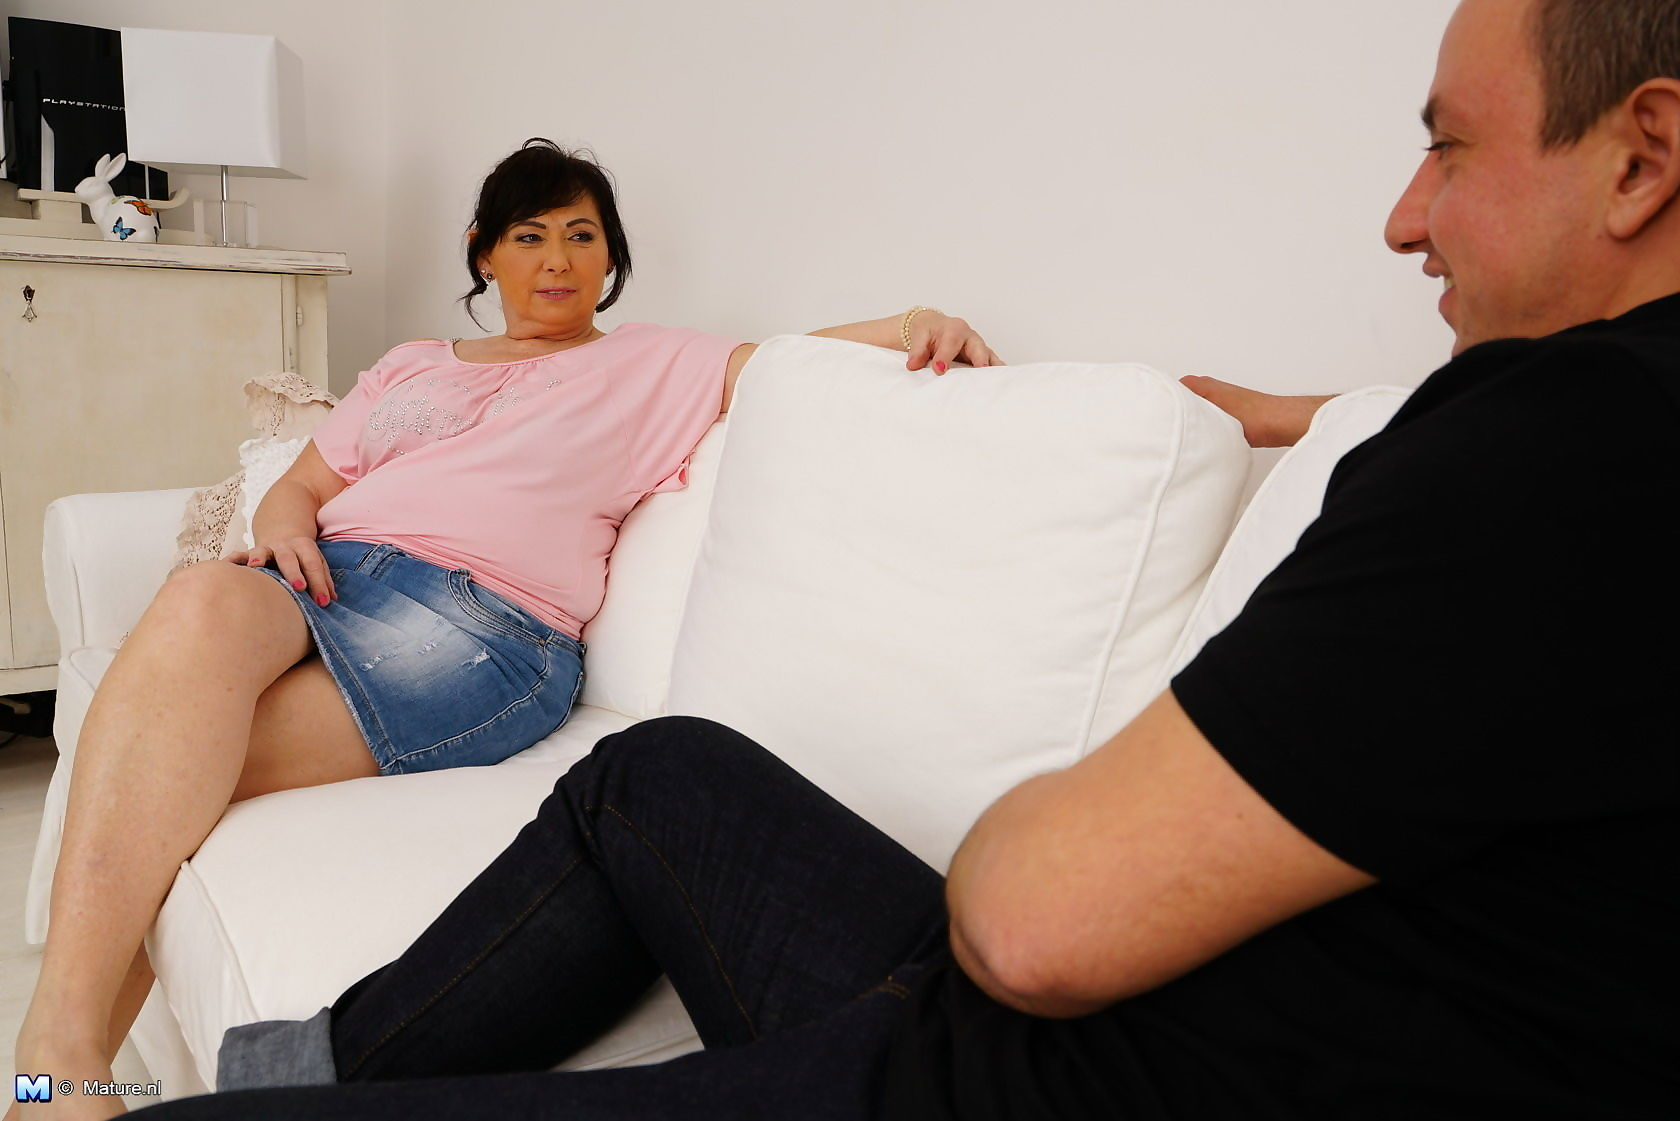 Curvy housewife playing with her toy boy - part 2028